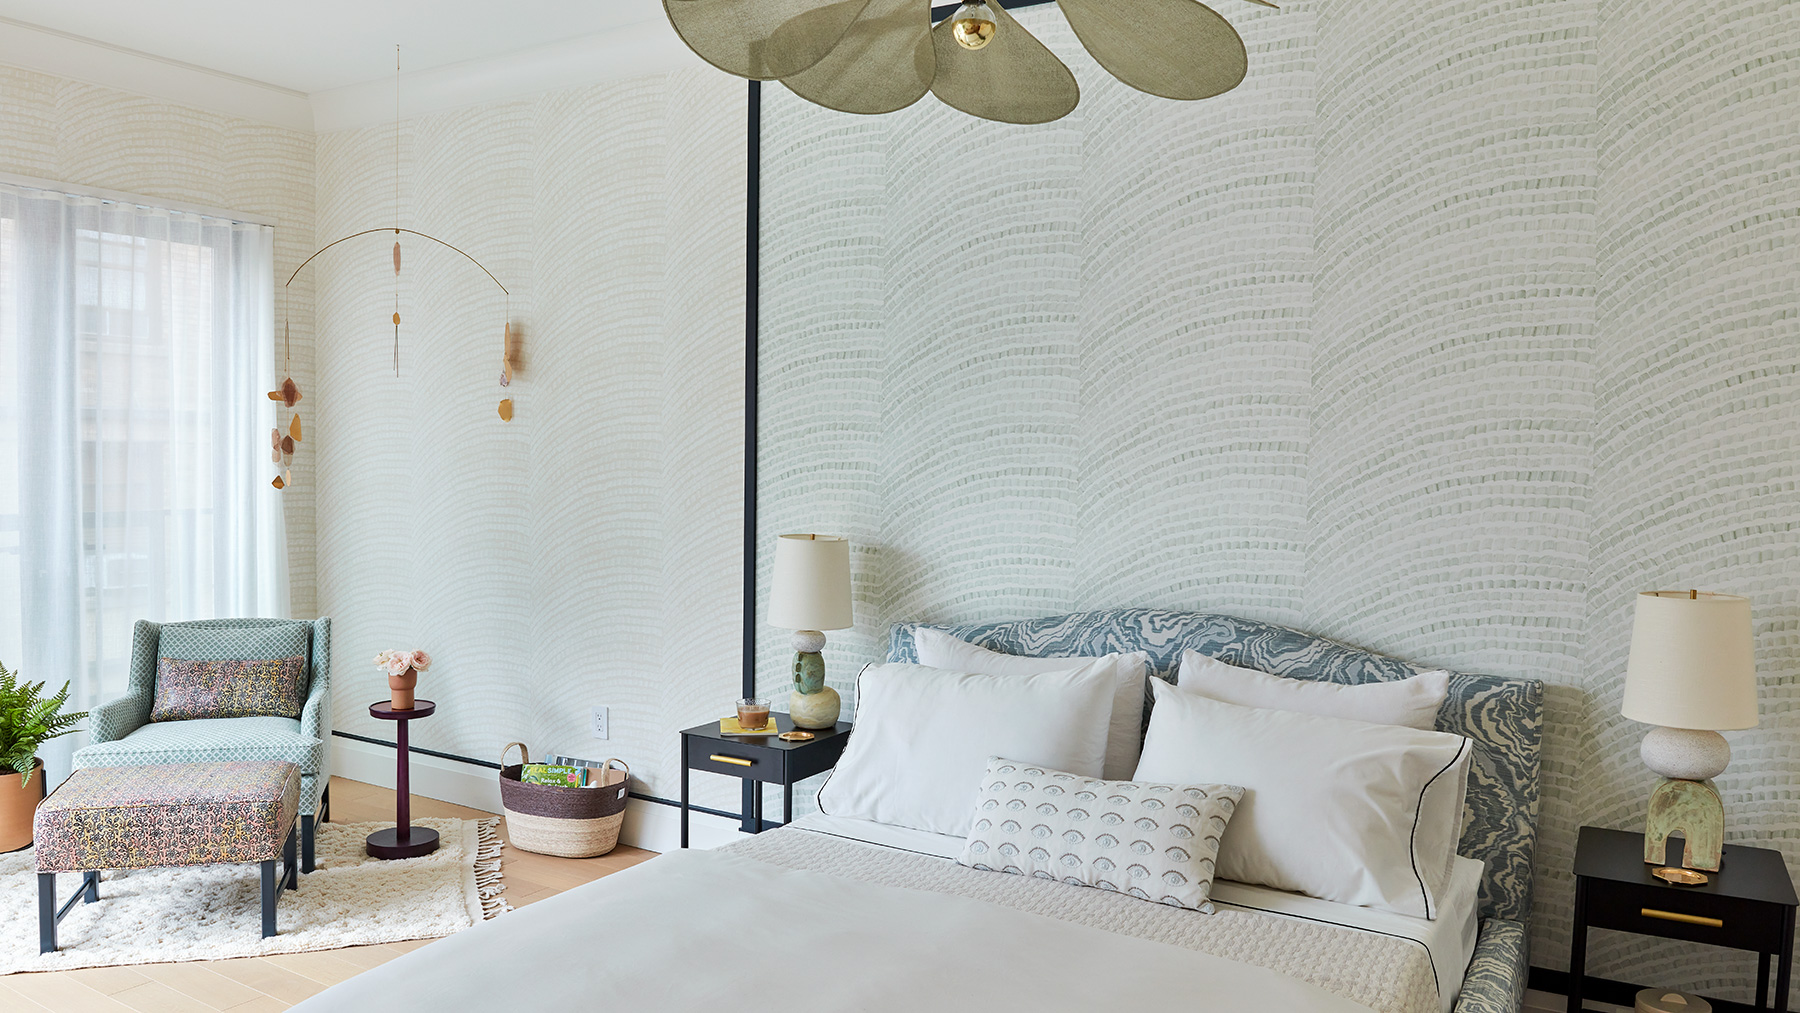 2020 Real Simple Home Tour: Bedroom